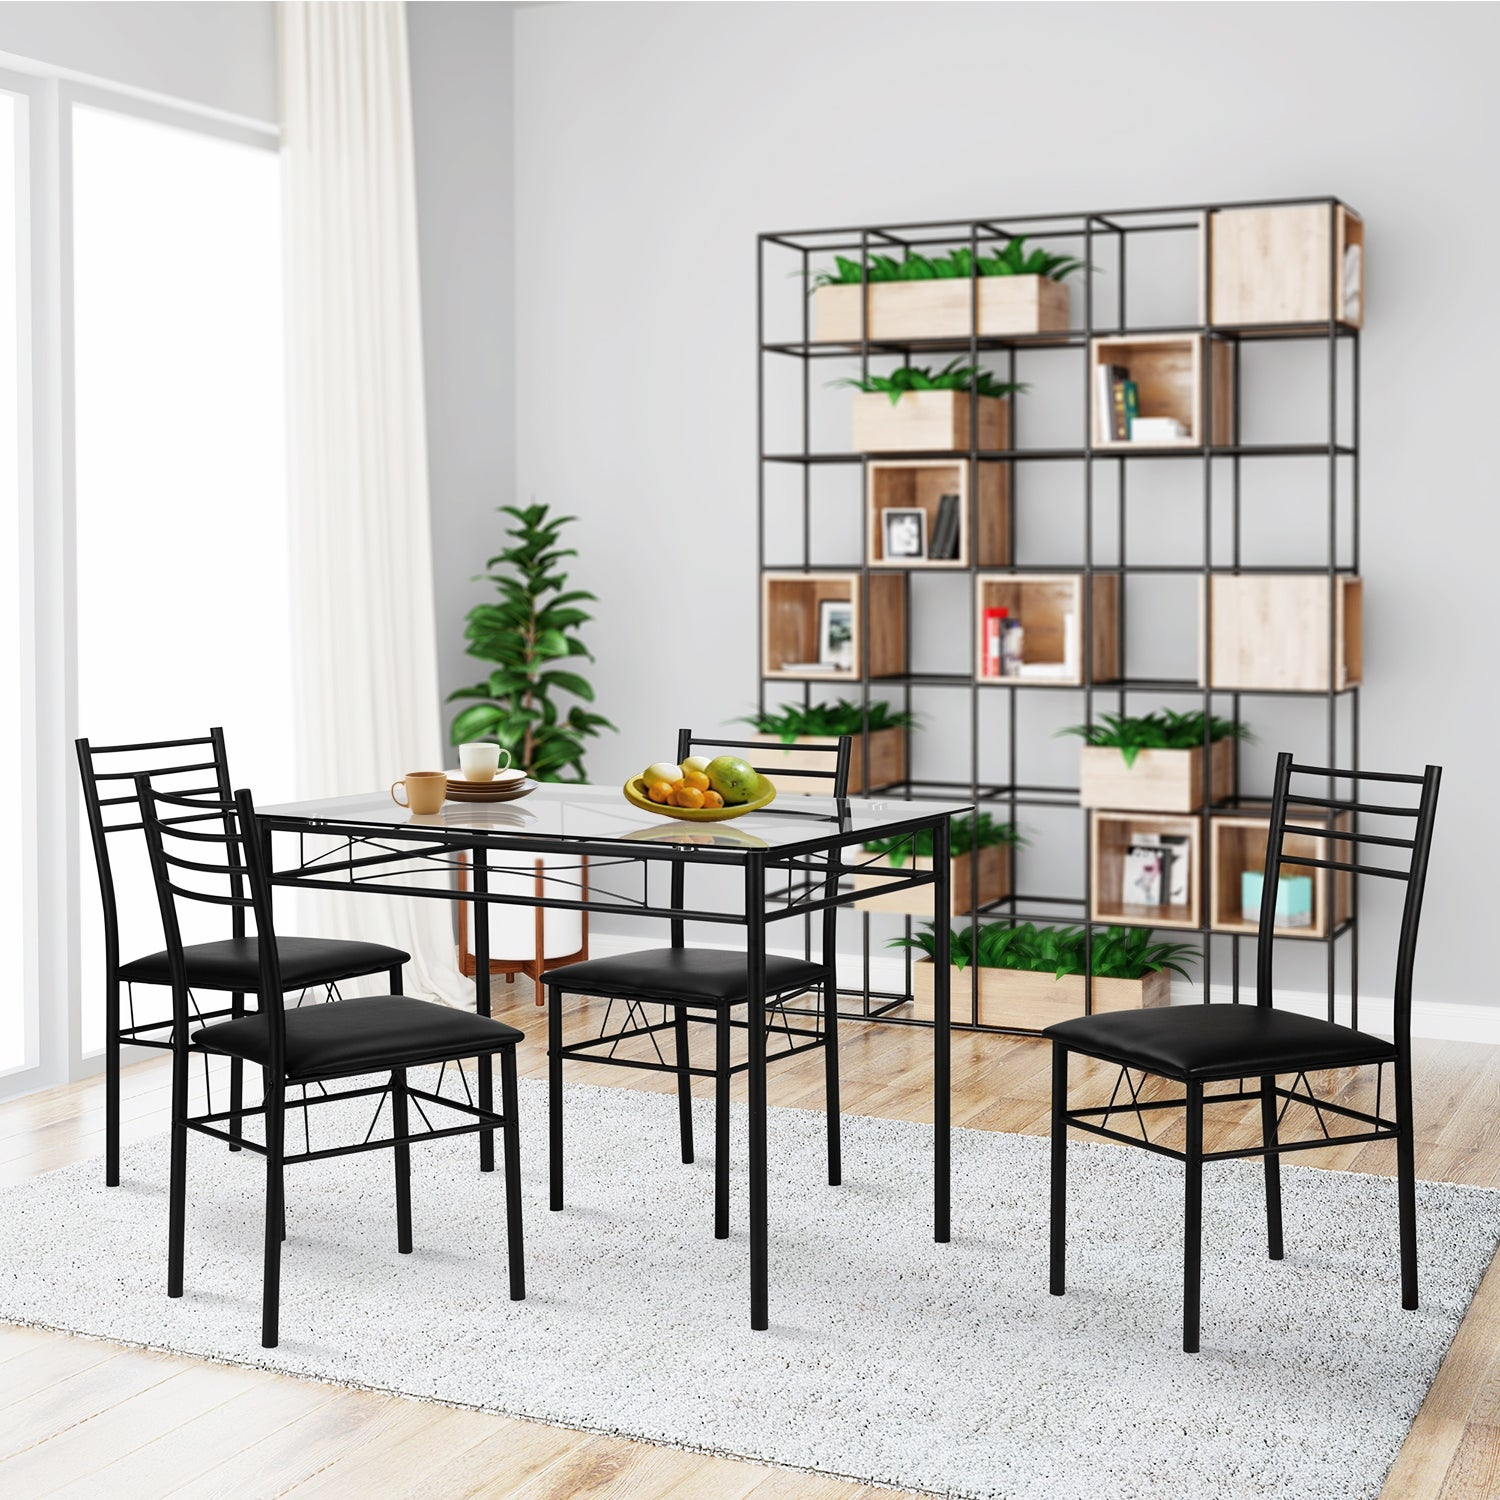 Shop VECELO Dining Table Set, Glass Table and 4 Chairs Metal Kitchen ...